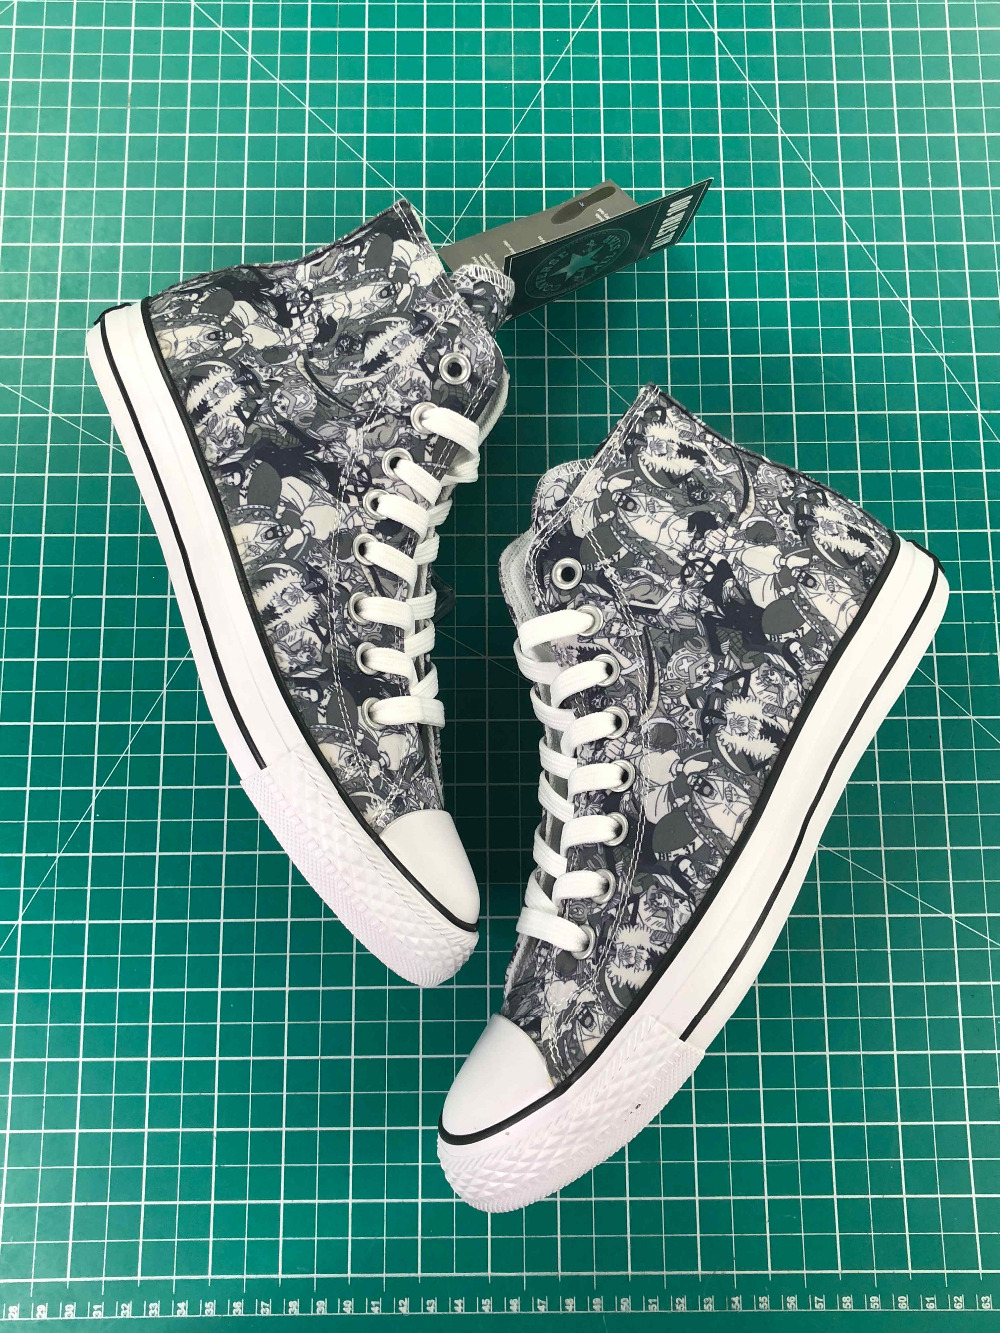 High Top Converse All Star Men Women Shoes Anime The Prince of Tennis Design Hand Painted Shoes Man Woman Sneakers 220 240v 480w electric mocha potty italian coffee pot home office electric heating coffee coffee mocha coffee equipment 6 cups